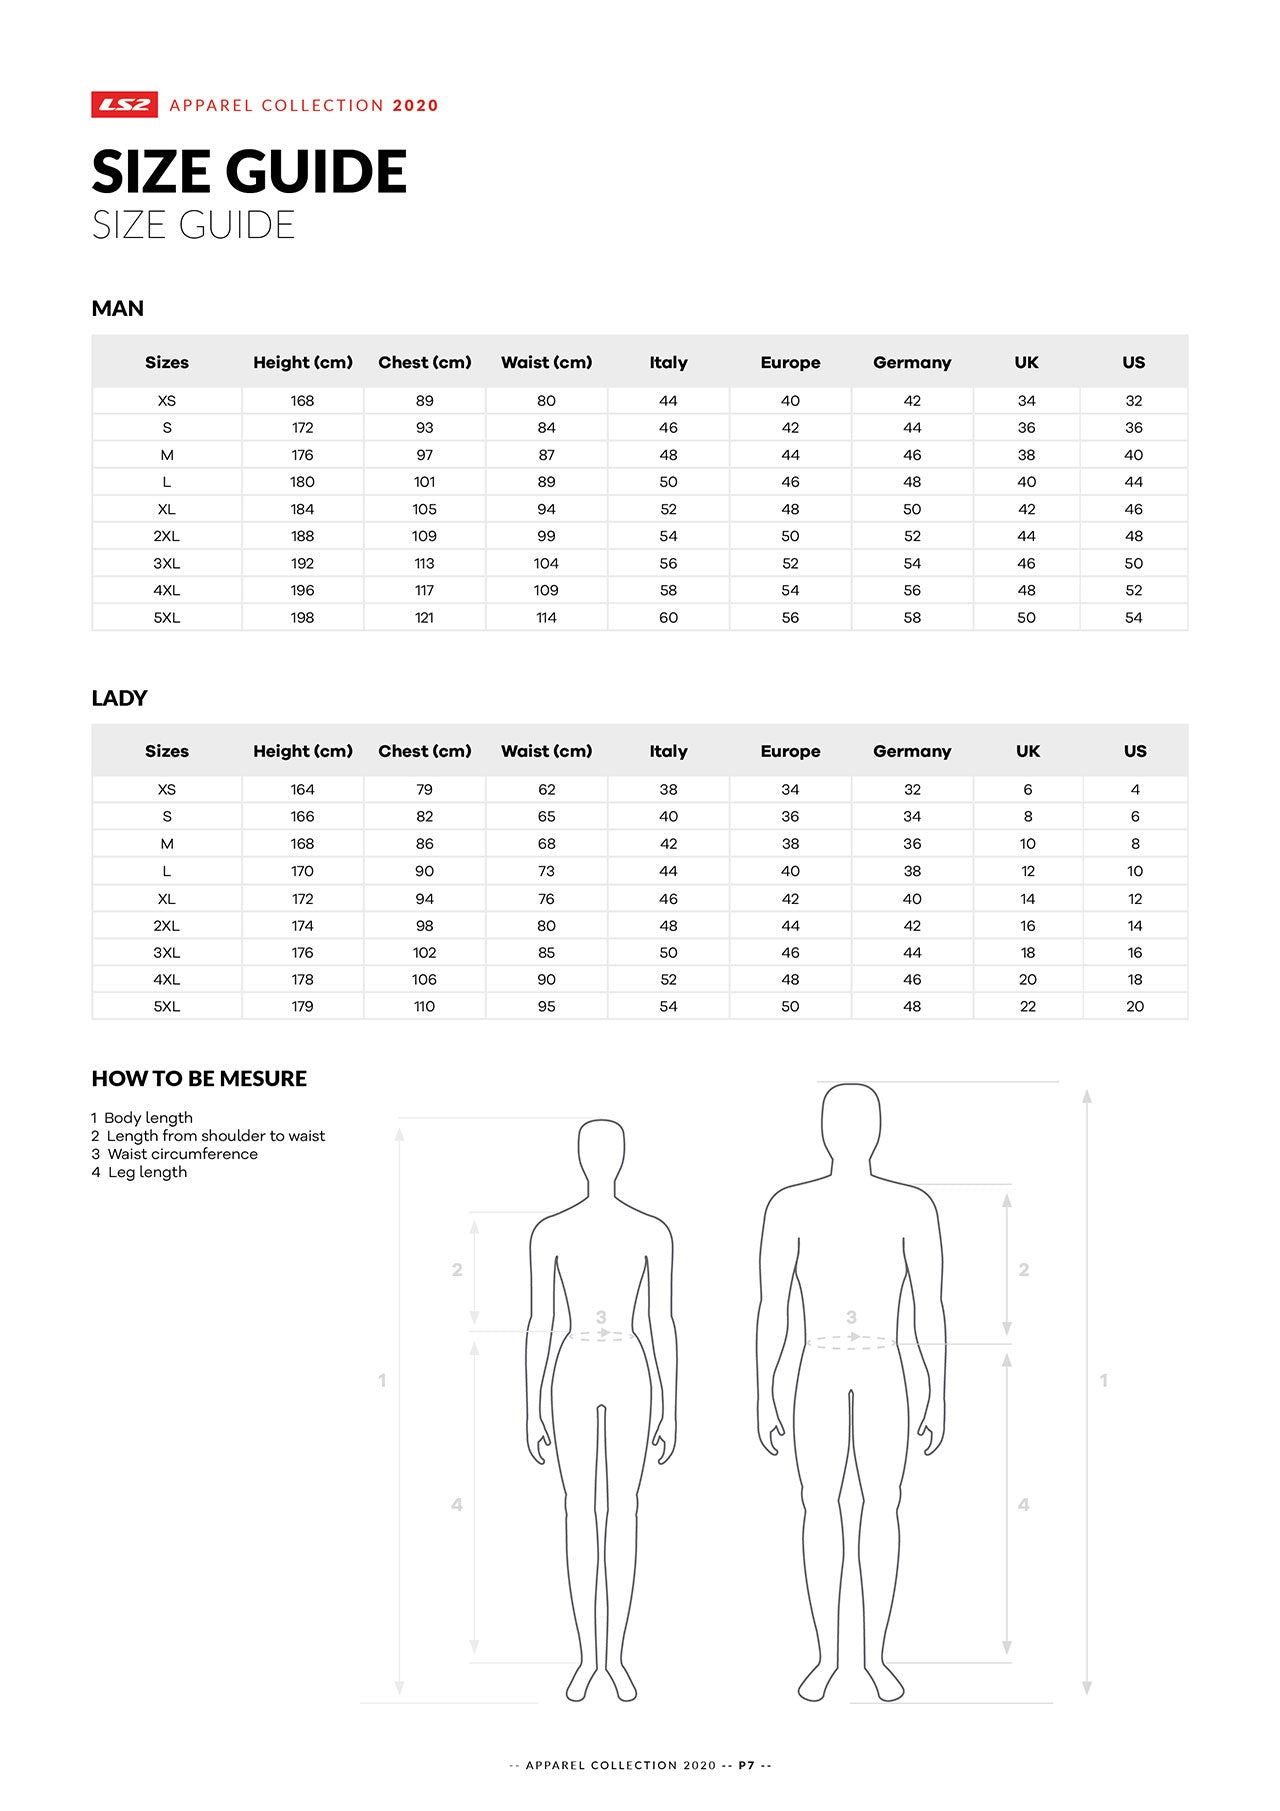 ls2 apparell & clothing size guide